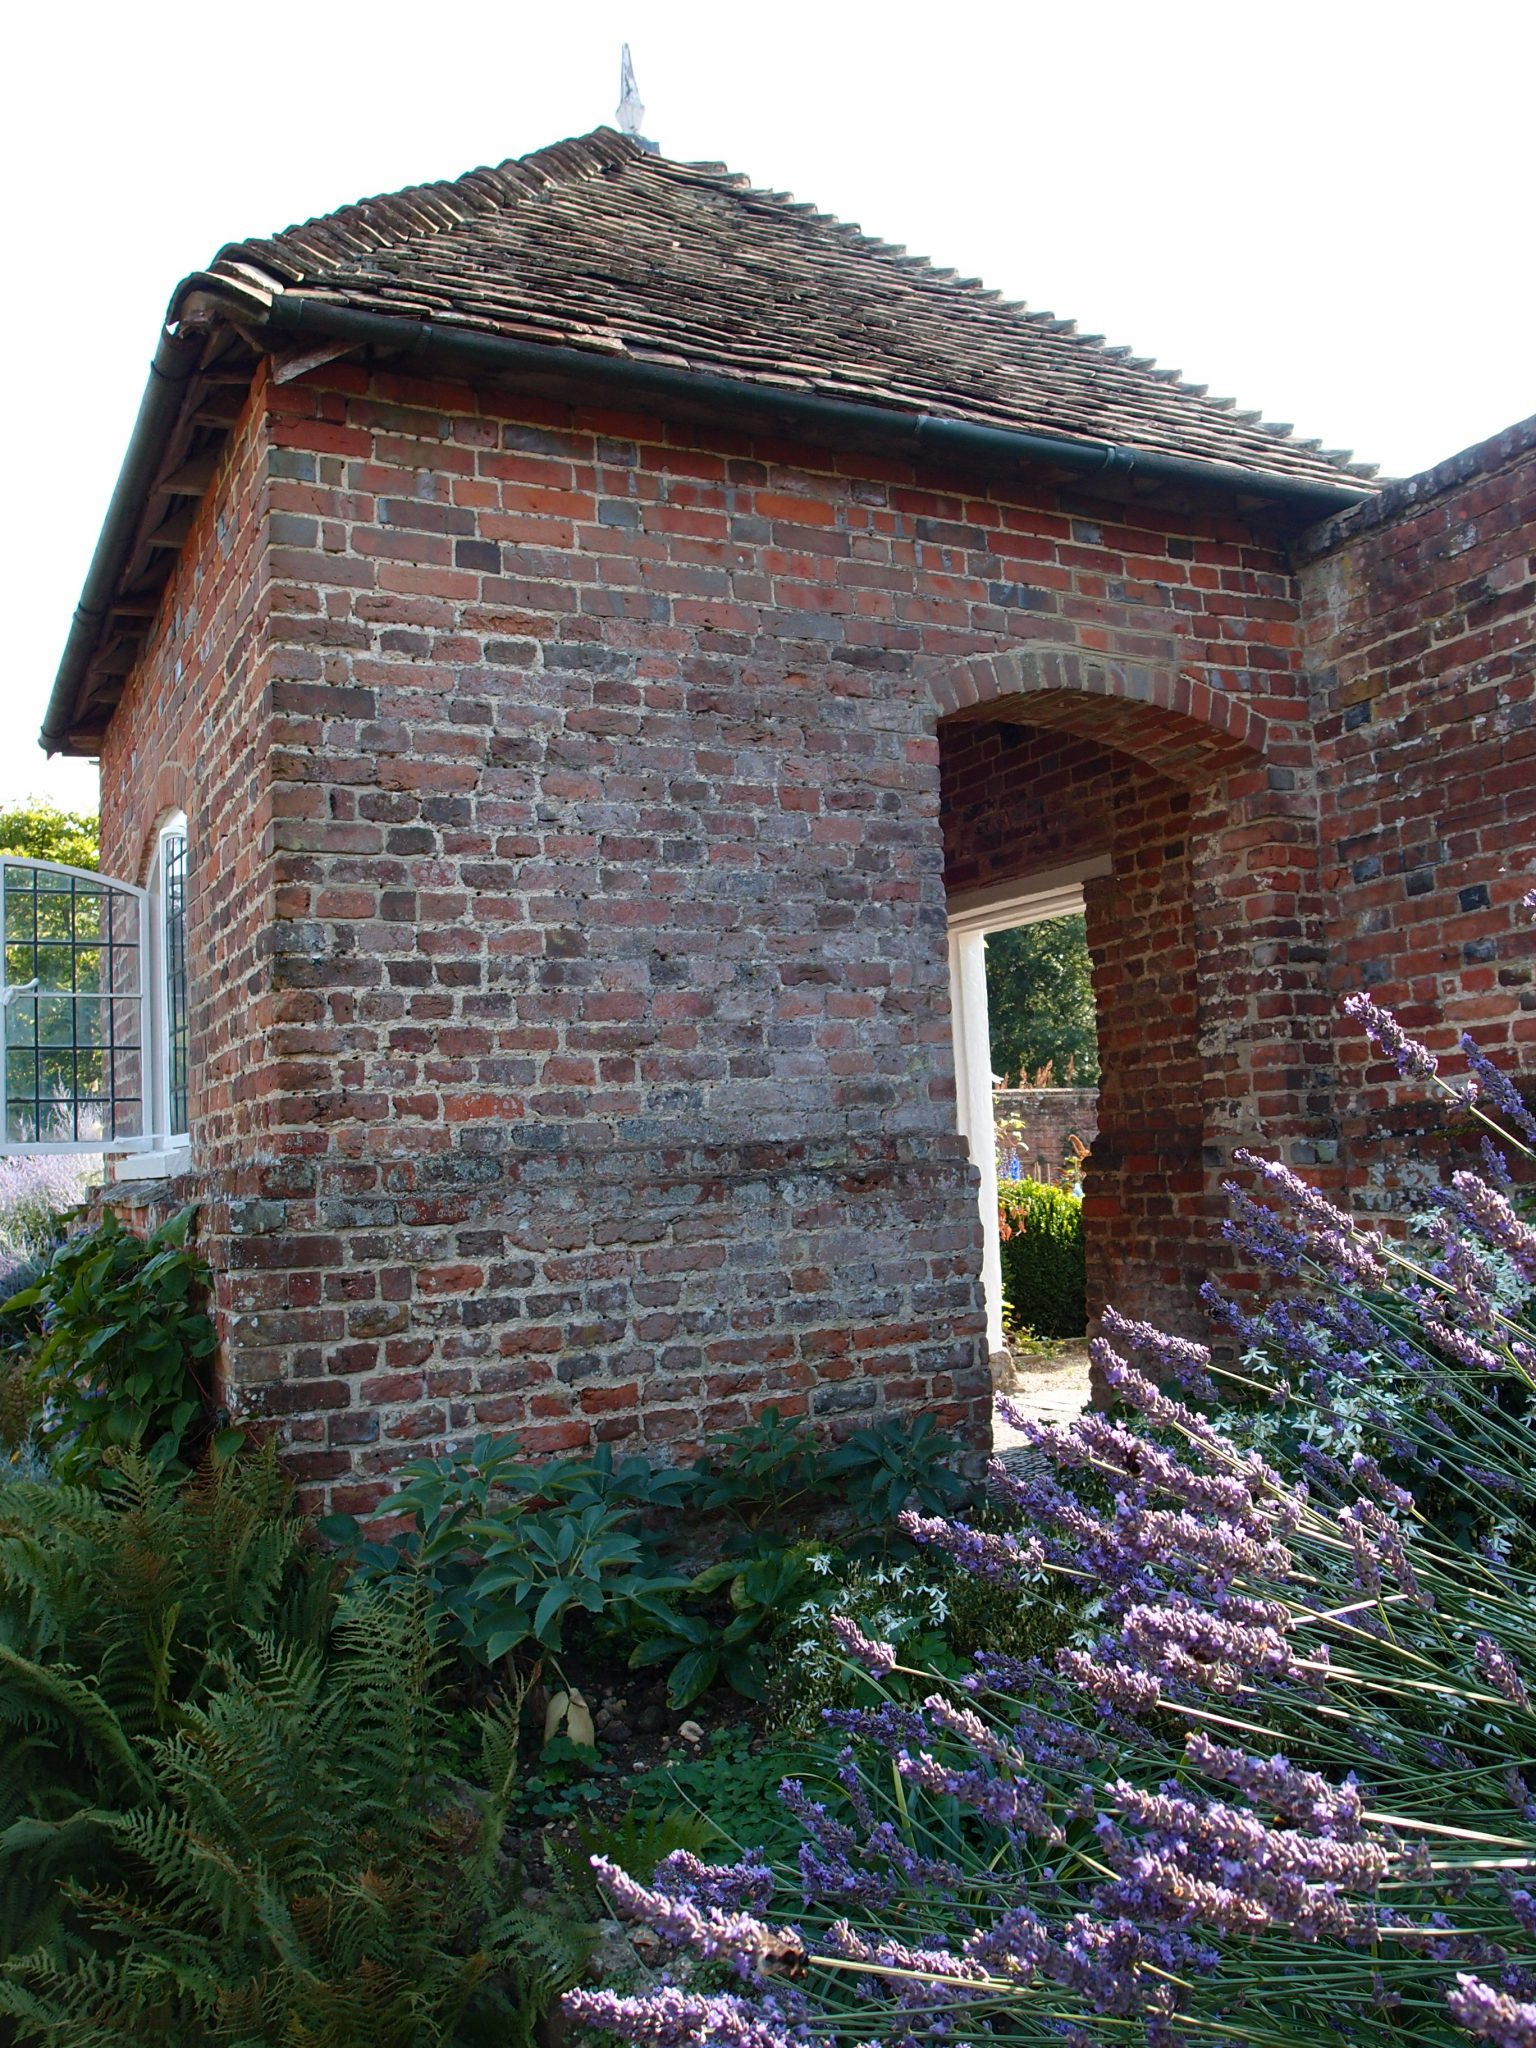 The late 18th century Walled Garden can be discreetly entered through this brick gazebo that's next to the center of the Rill in the Italian Garden.